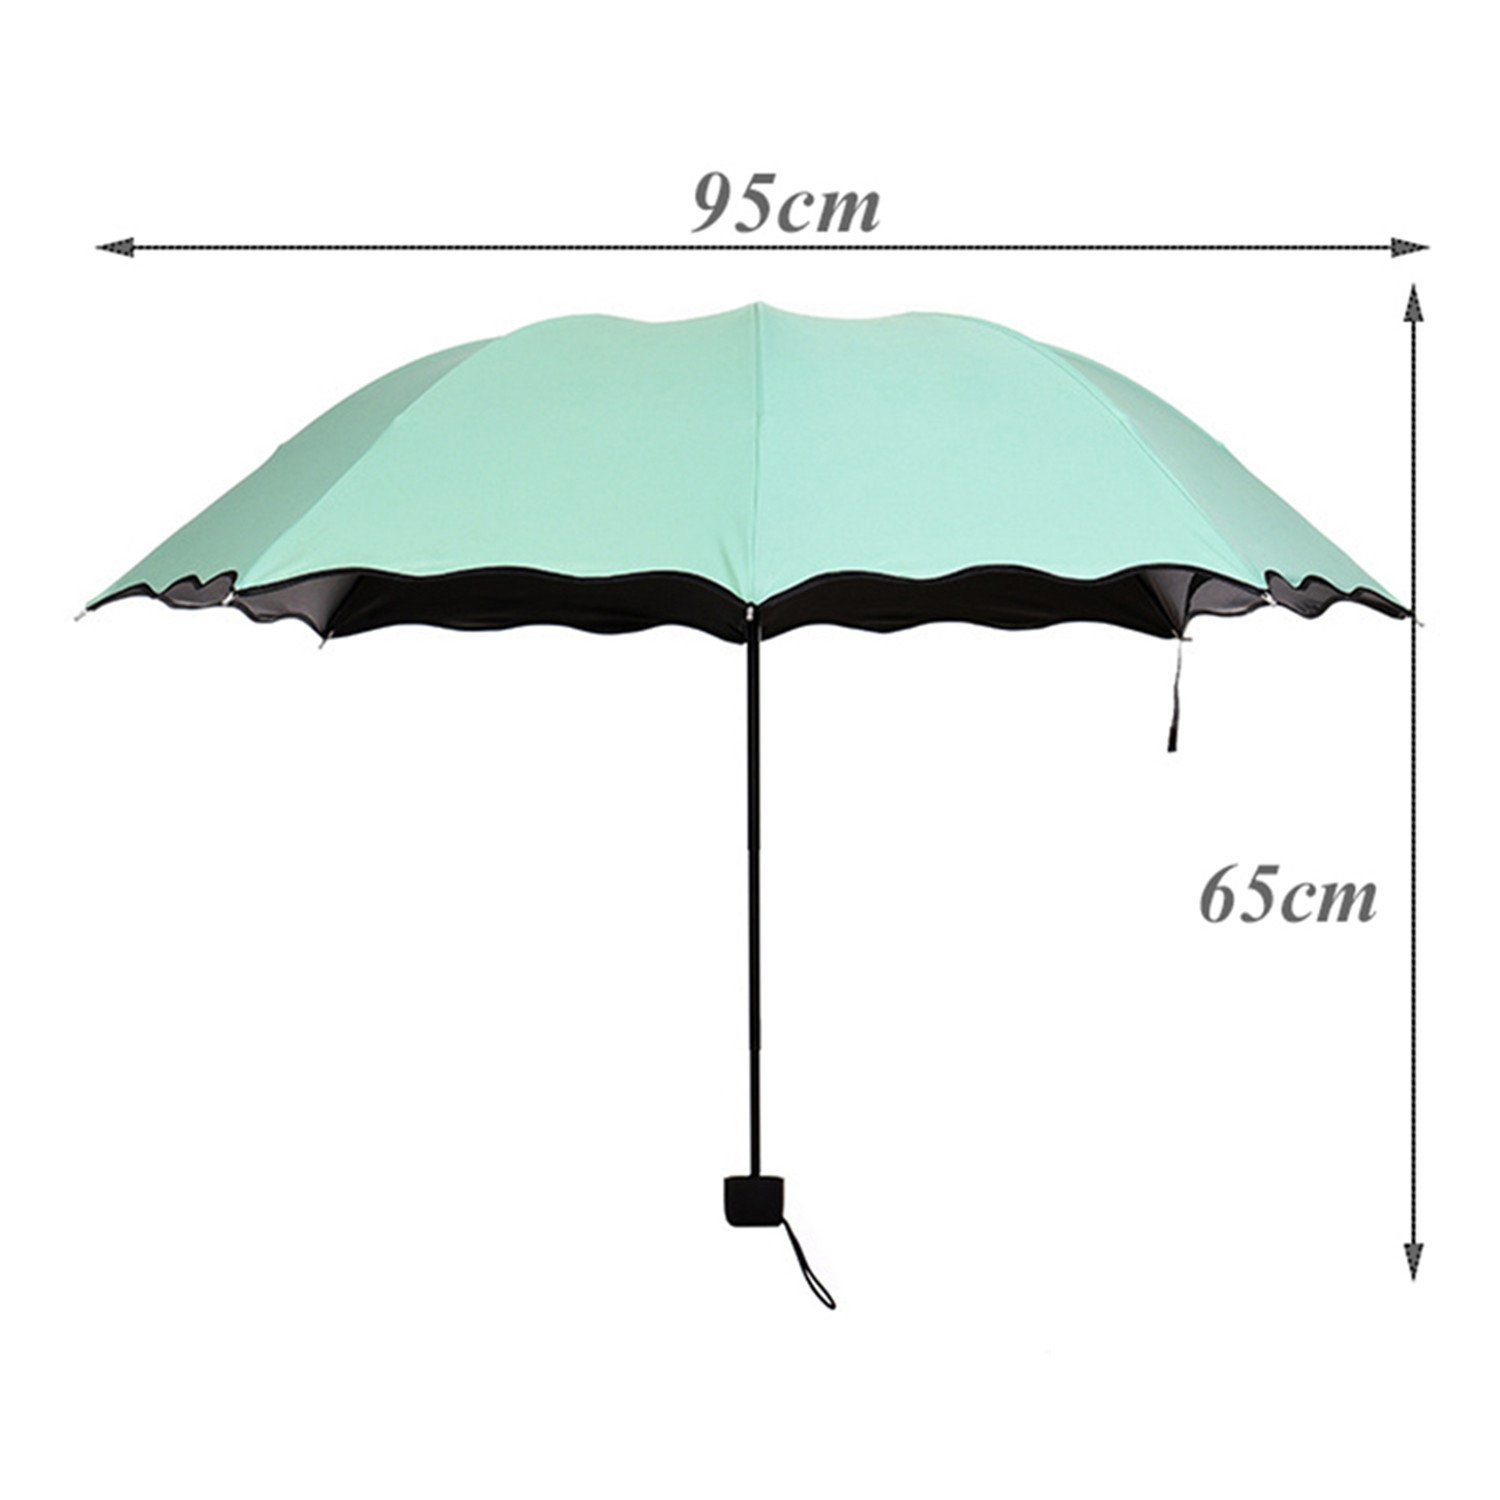 Amazon.com : Madehappy Fashion Cheap Lady Sun Umbrella Three Folding Umbrella 8 Rib Wind Resistant Frame Manual Anti-UV Umbrella Blue : Sports & Outdoors